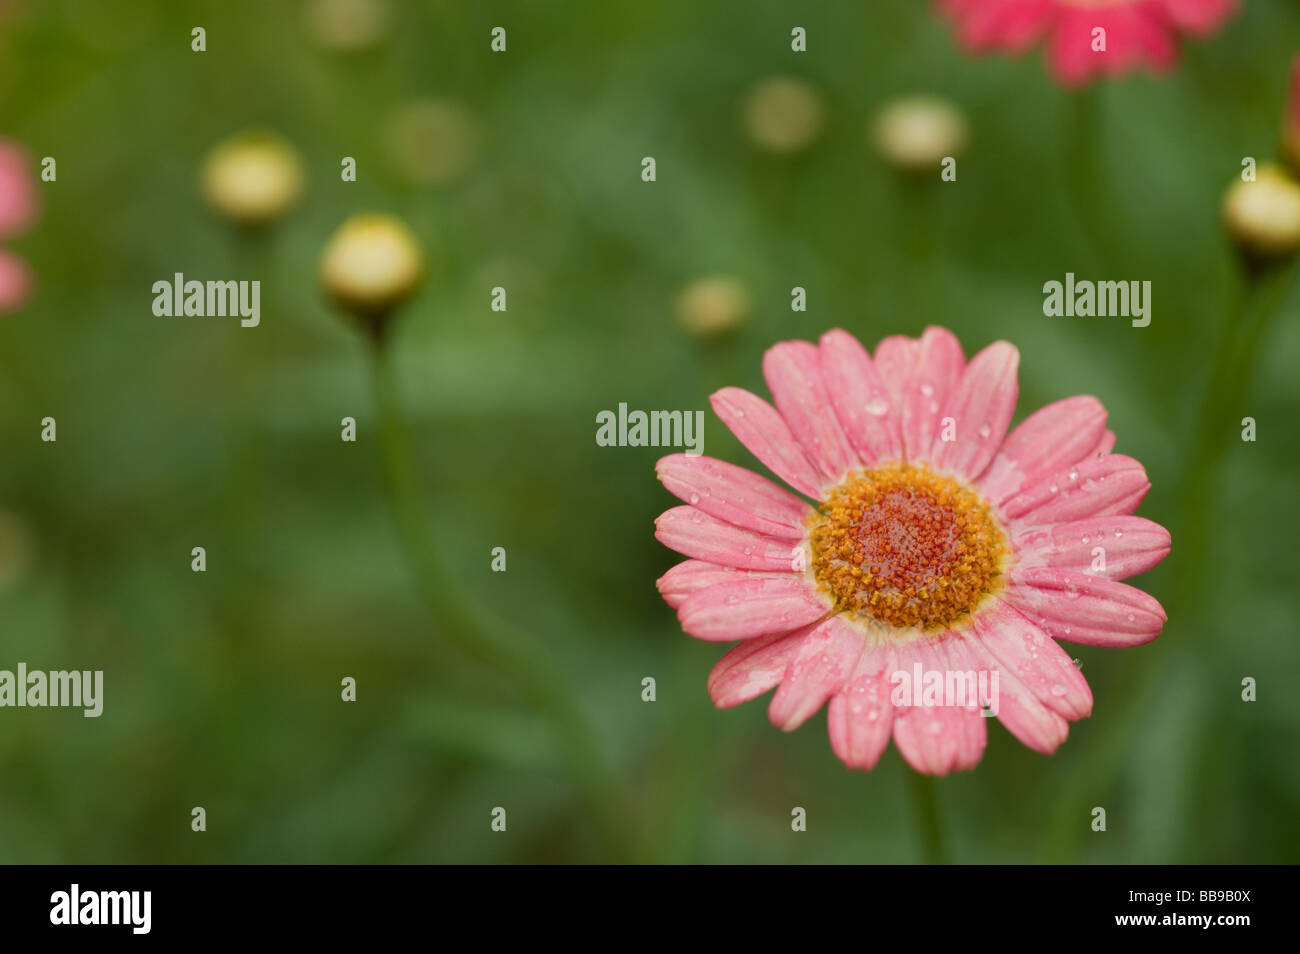 Pink daisy type flowers in stock photos pink daisy type flowers in one single bloom on daisy type flower with green in the background stock image izmirmasajfo